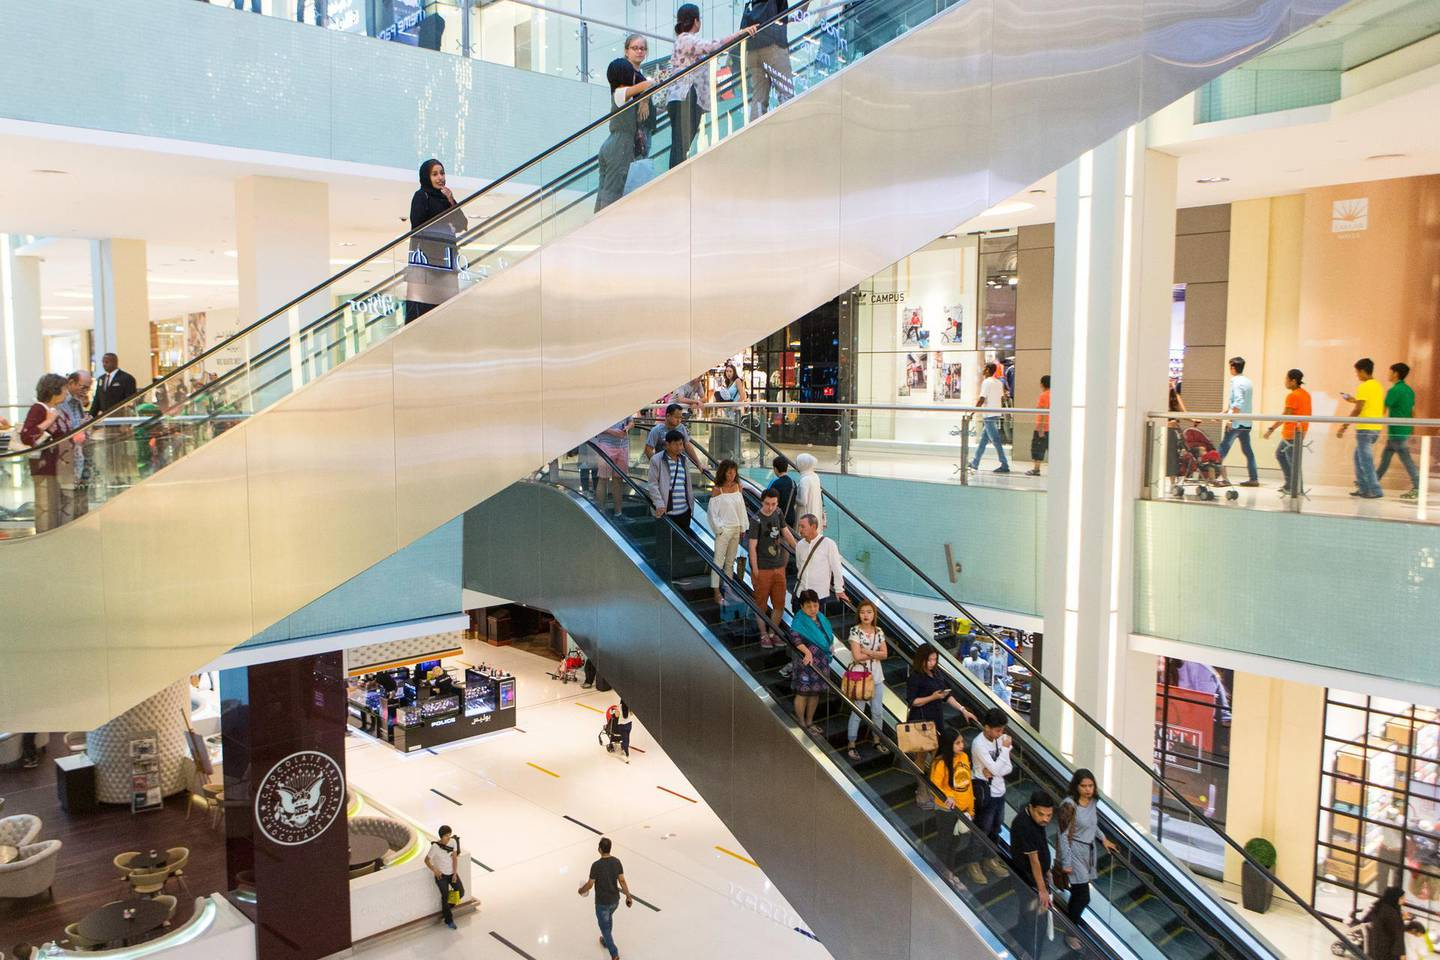 Dubai, United Arab Emirates, June 23, 2017:     People shop ahead of  Eid Al Fitr at the Dubai Mall in Dubai on June 23, 2017. Eid Al Fitr, or the 'festival of breaking fast', marks the end of the holy month of Ramadan and the beginning of Shawaal, the 10th month of the Islamic lunar calendar. Christopher Pike / The NationalJob ID: 97926Reporter:  N/ASection: NewsKeywords:  *** Local Caption ***  CP0623-na-Standalone-Eid Shopping-02.JPG